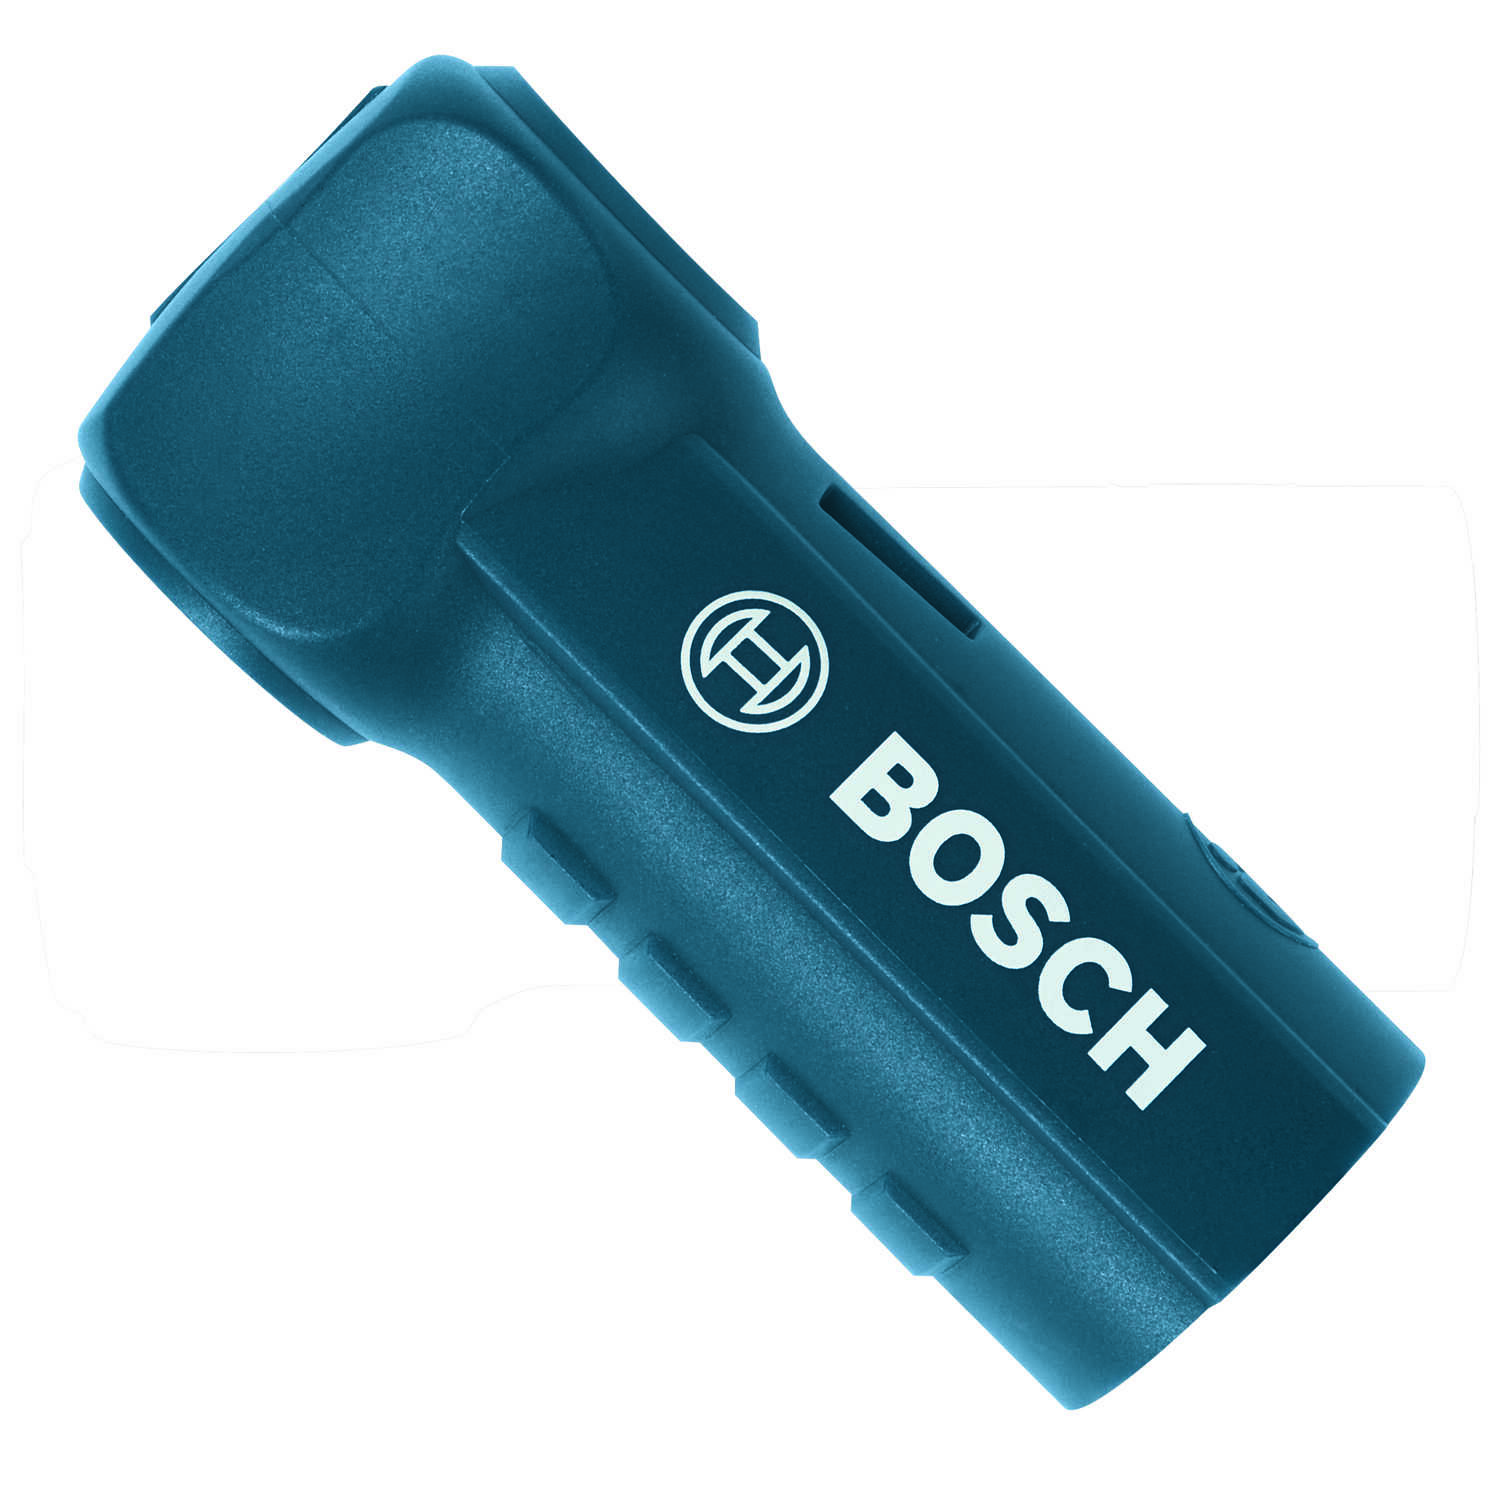 Bosch  Speed Clean  4.25 in. L x 1.37 in. Dia. Hose Adapter  Teal  1 pc.